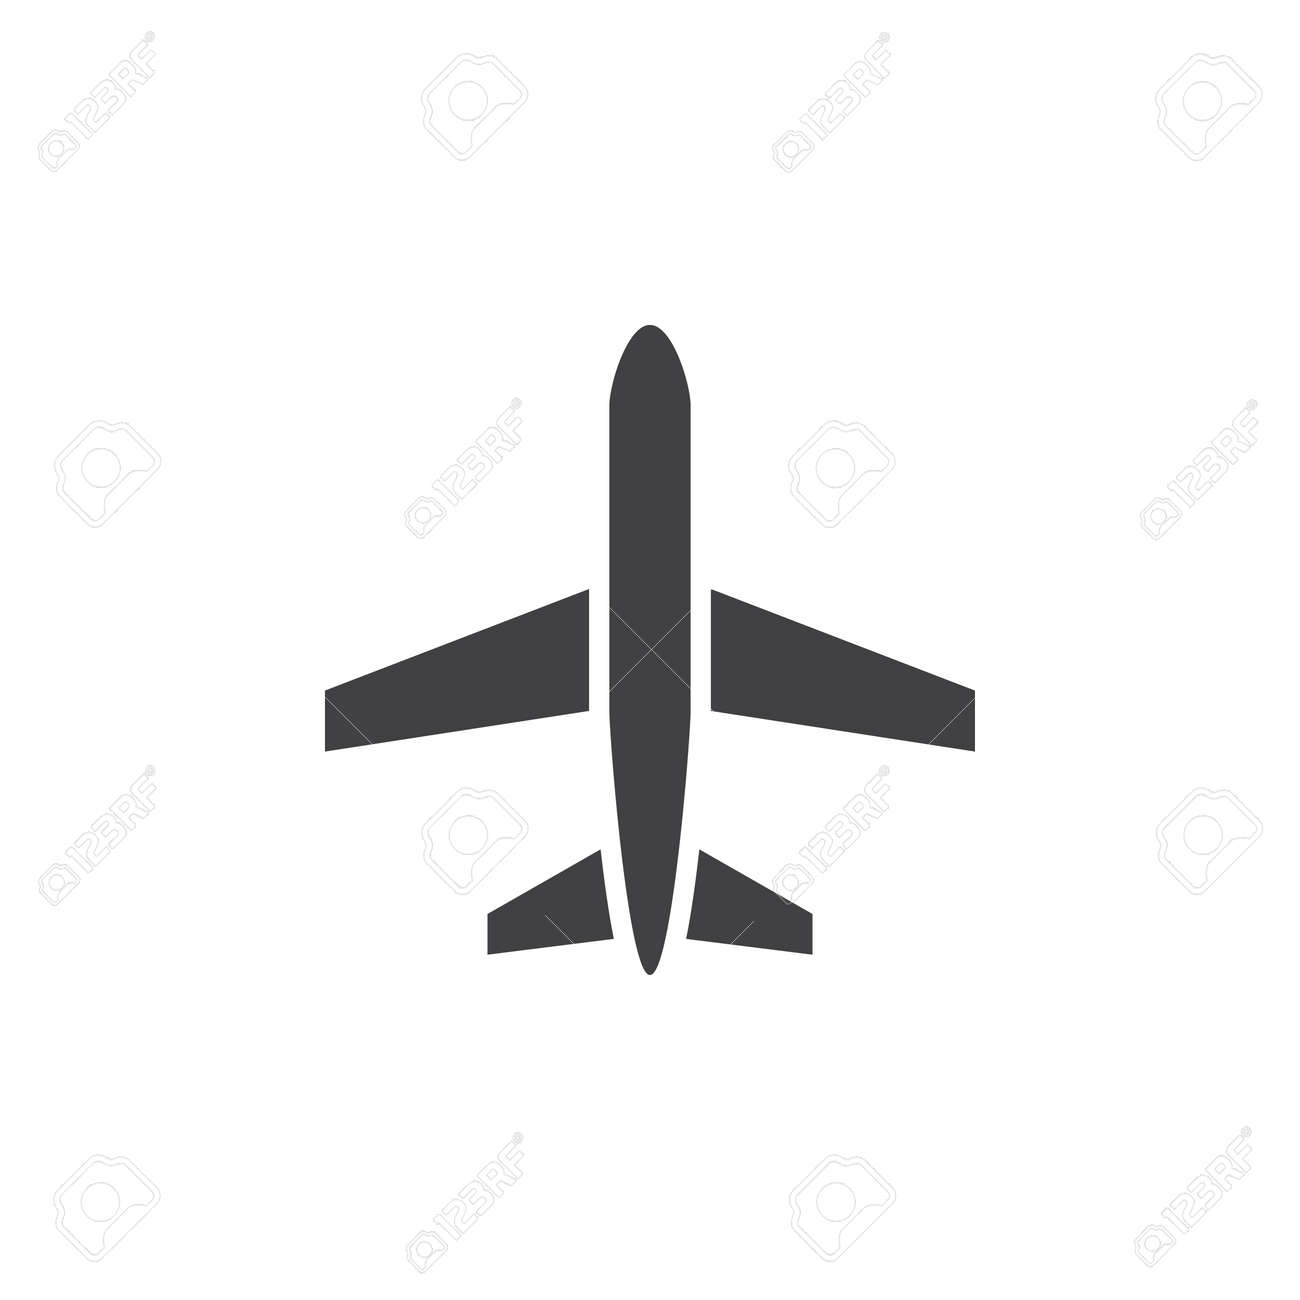 Plane Icon Vector Aircraft Solid Logo Airplane Pictogram Isolated